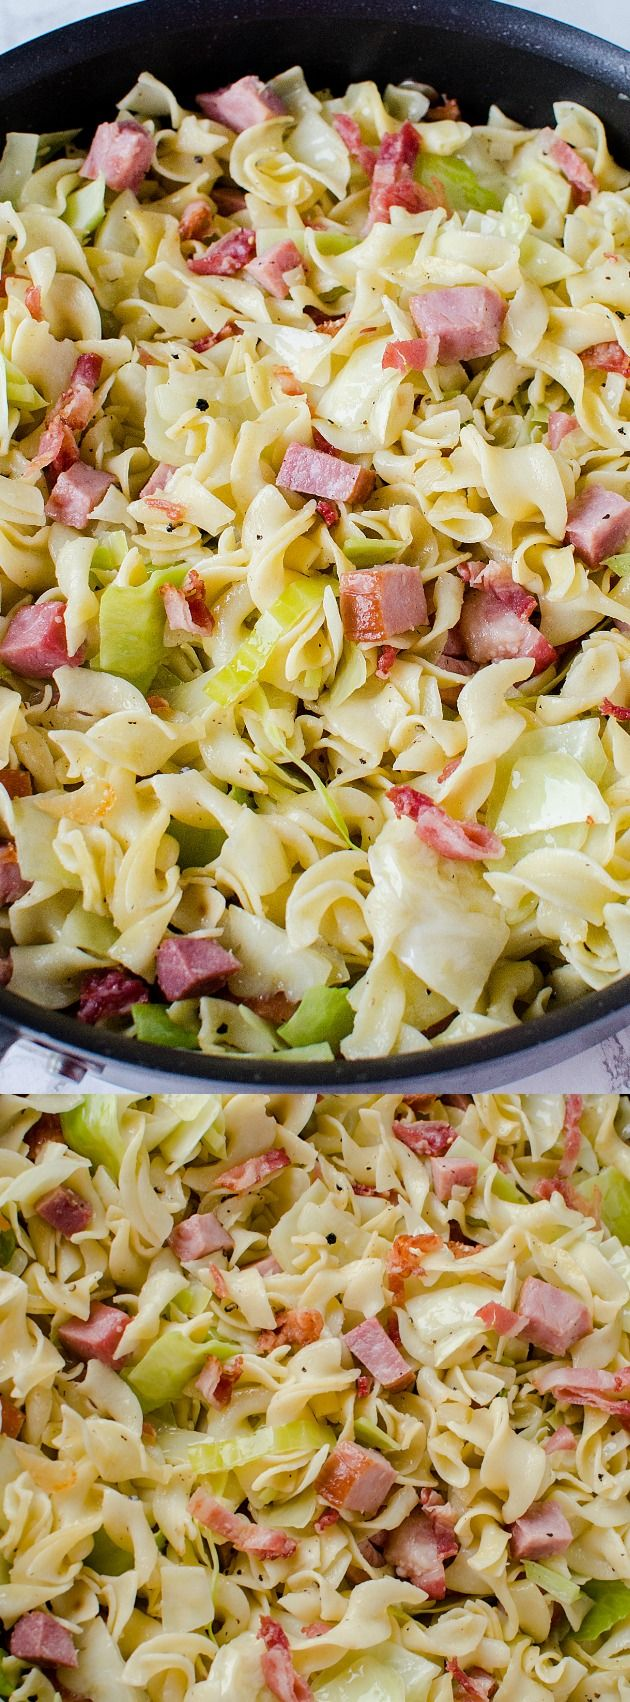 This Cabbage and Noodles with Ham recipe from Incredible Recipes from Heaven is a simple and yummy dish. It's a traditional Polish dish with tender egg noodles, cabbage, and cubed ham or bacon!